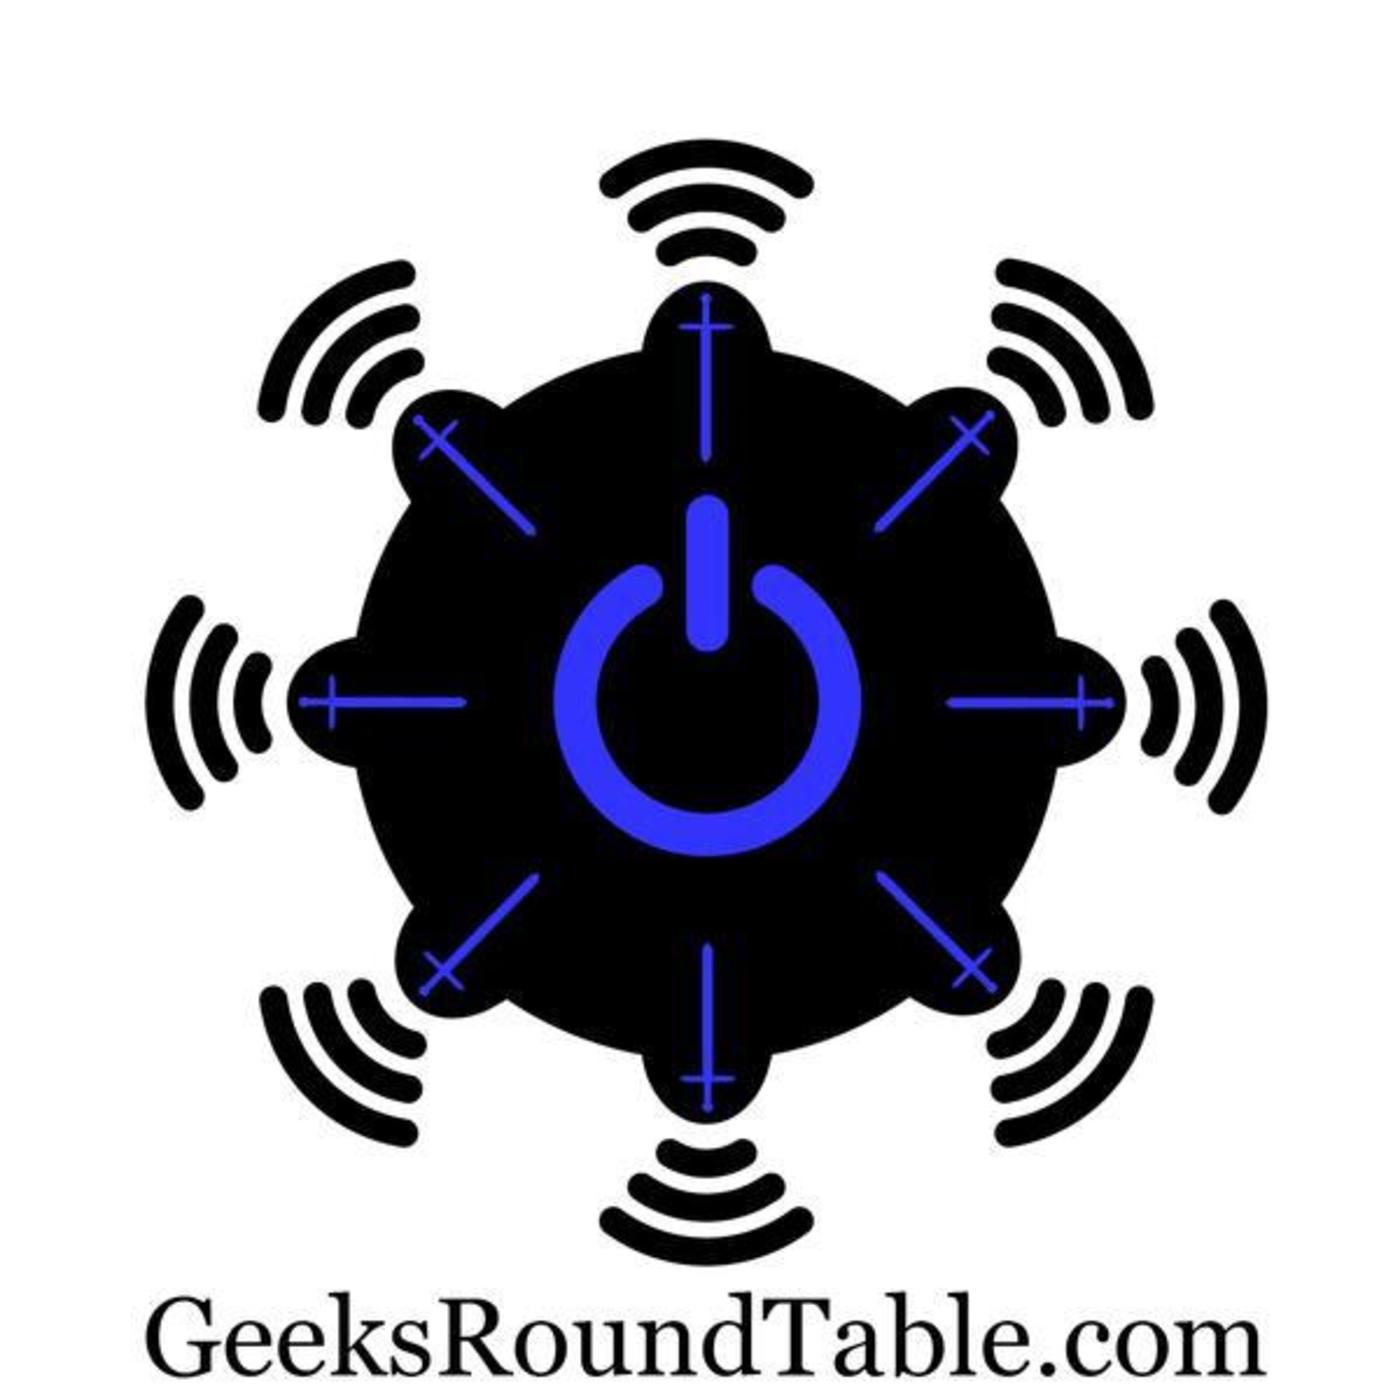 Geeks Round Table